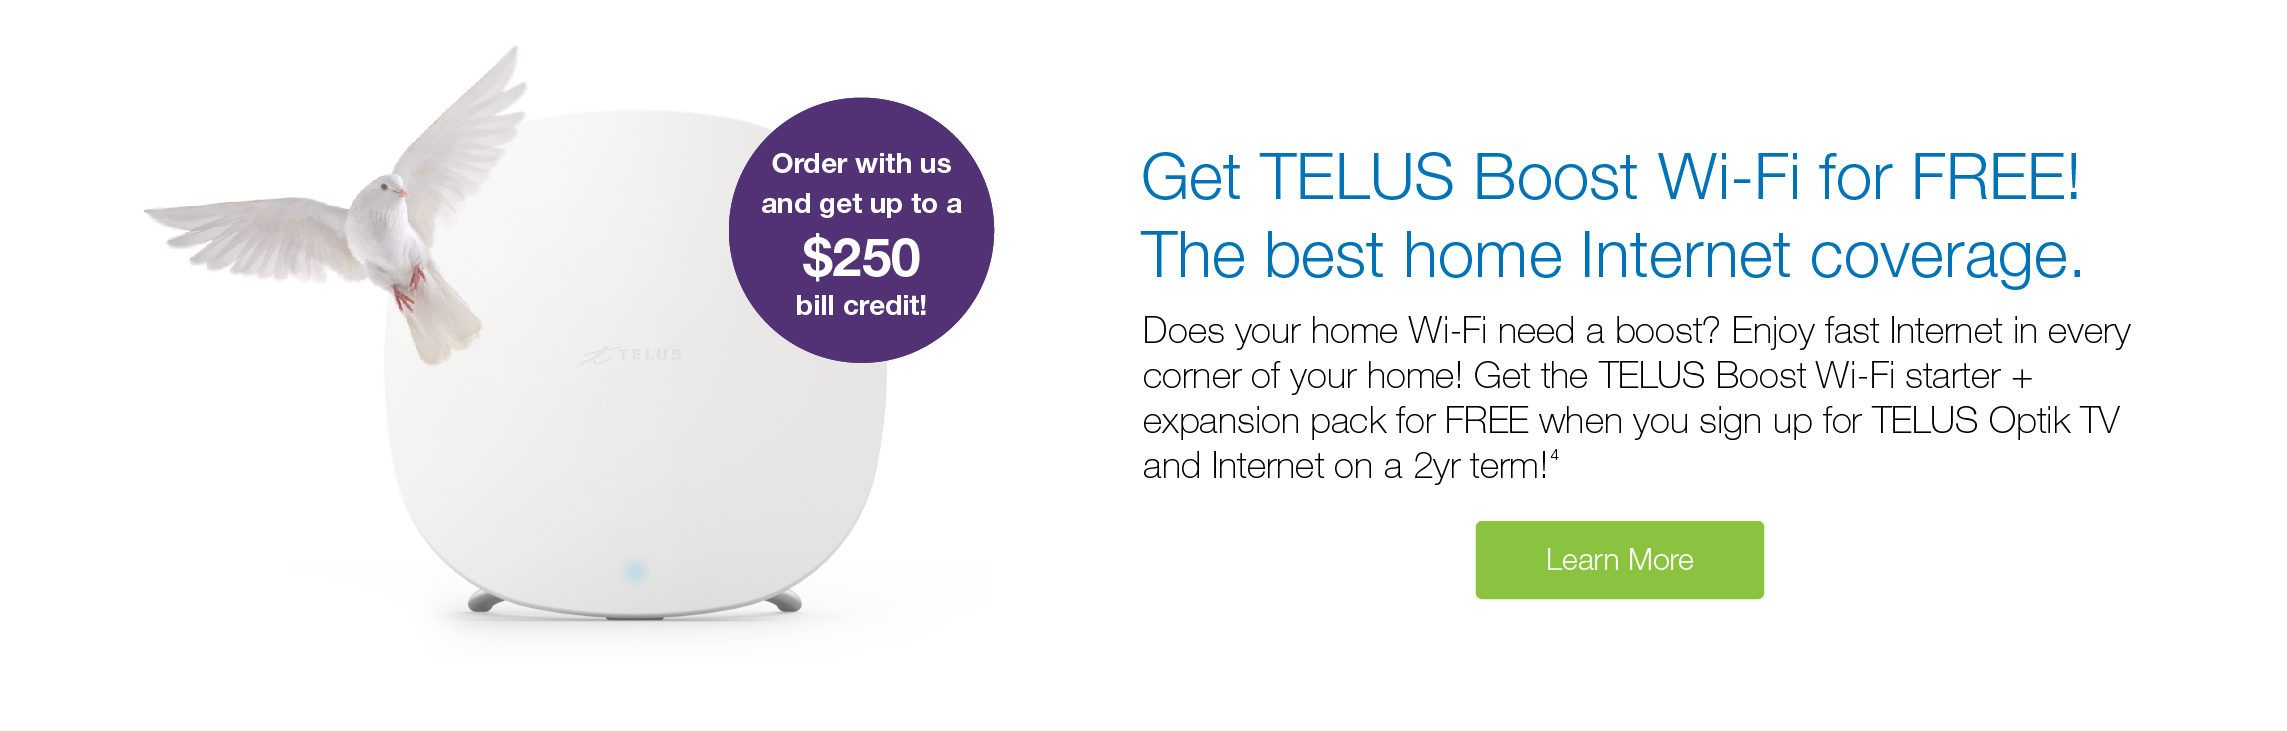 Get Free TELUS Boost Wi-Fi when you sign up for Optik TV and internet for 2 years!